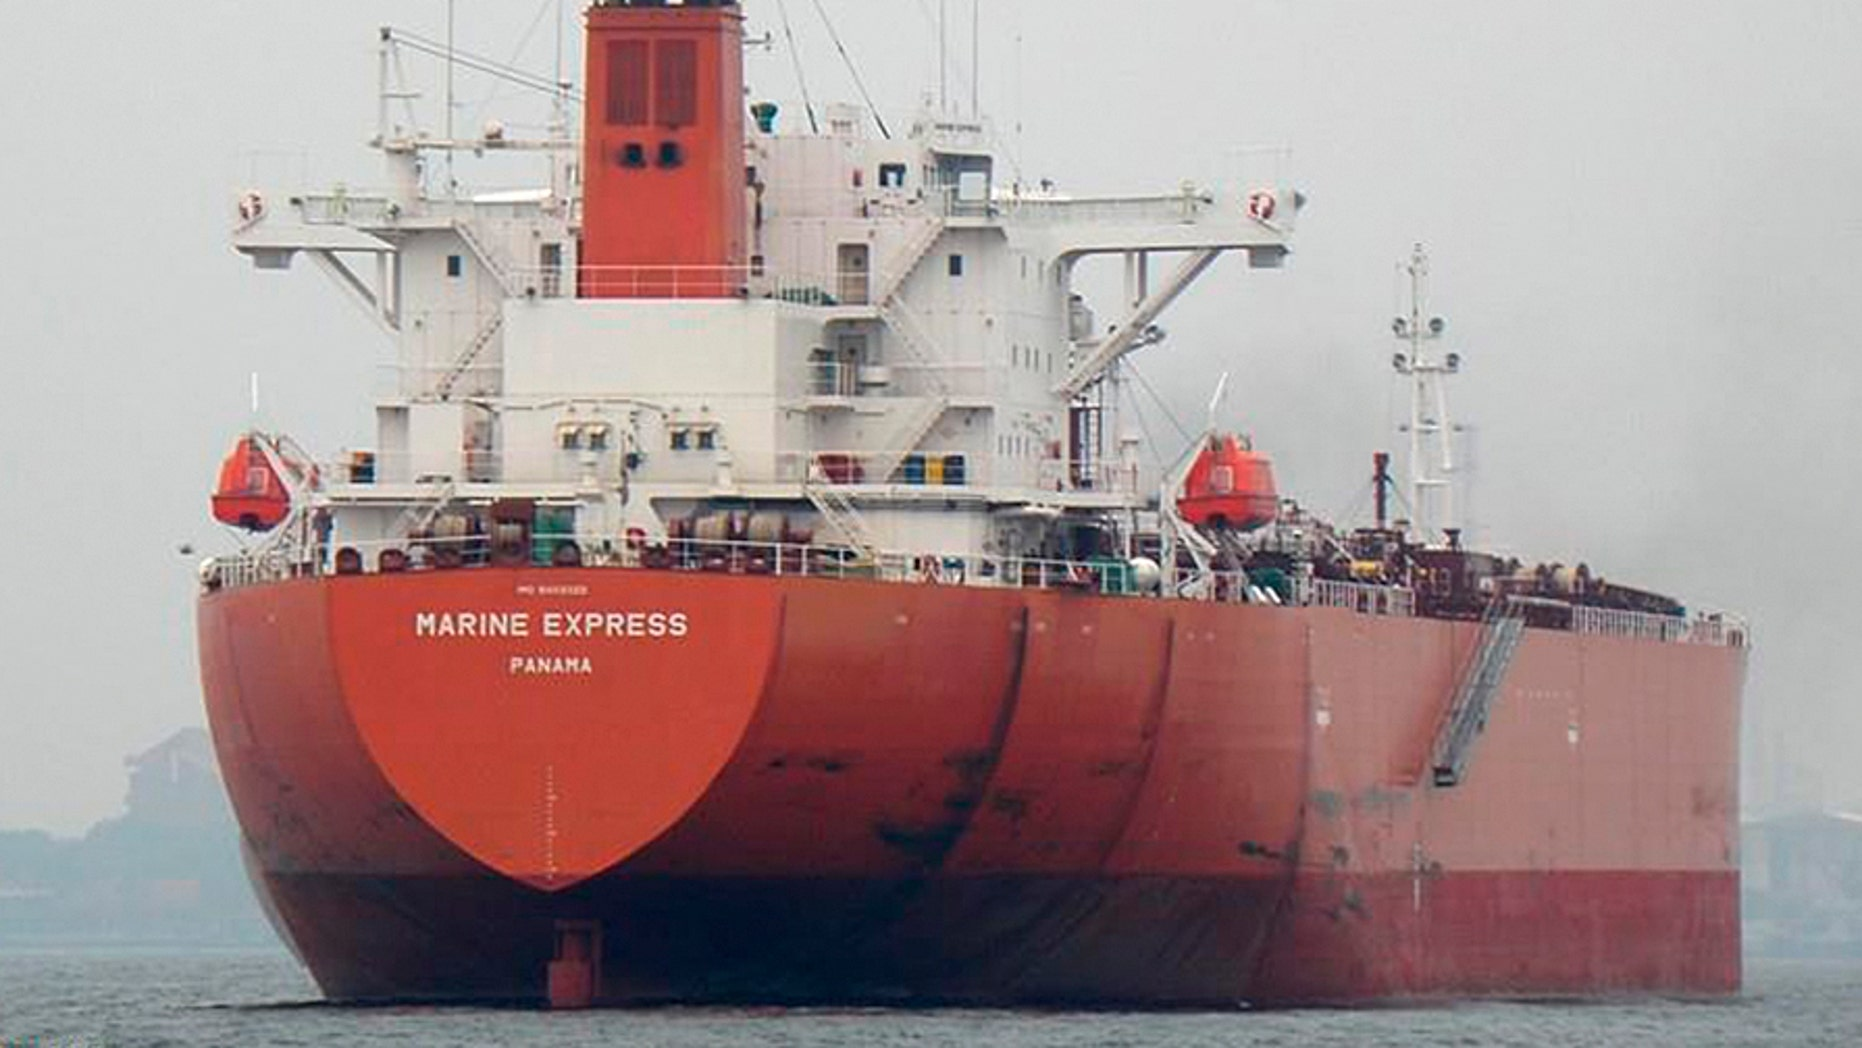 The Marine Express oil tanker vanished off the coast of Benin on Feb. 1.